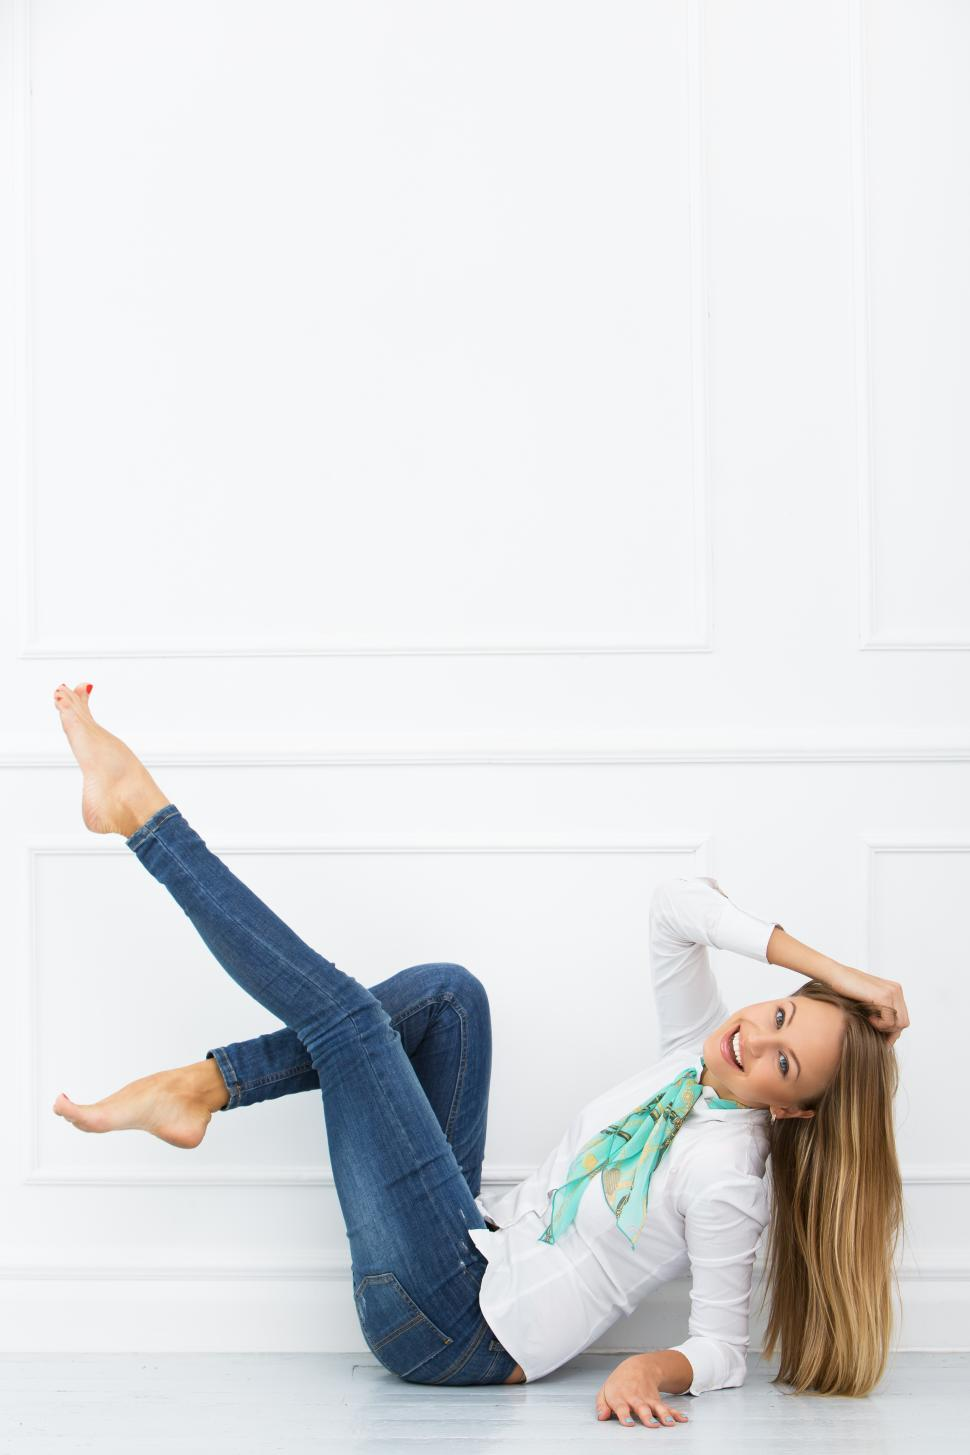 Download Free Stock Photo of Young woman kicking up her legs